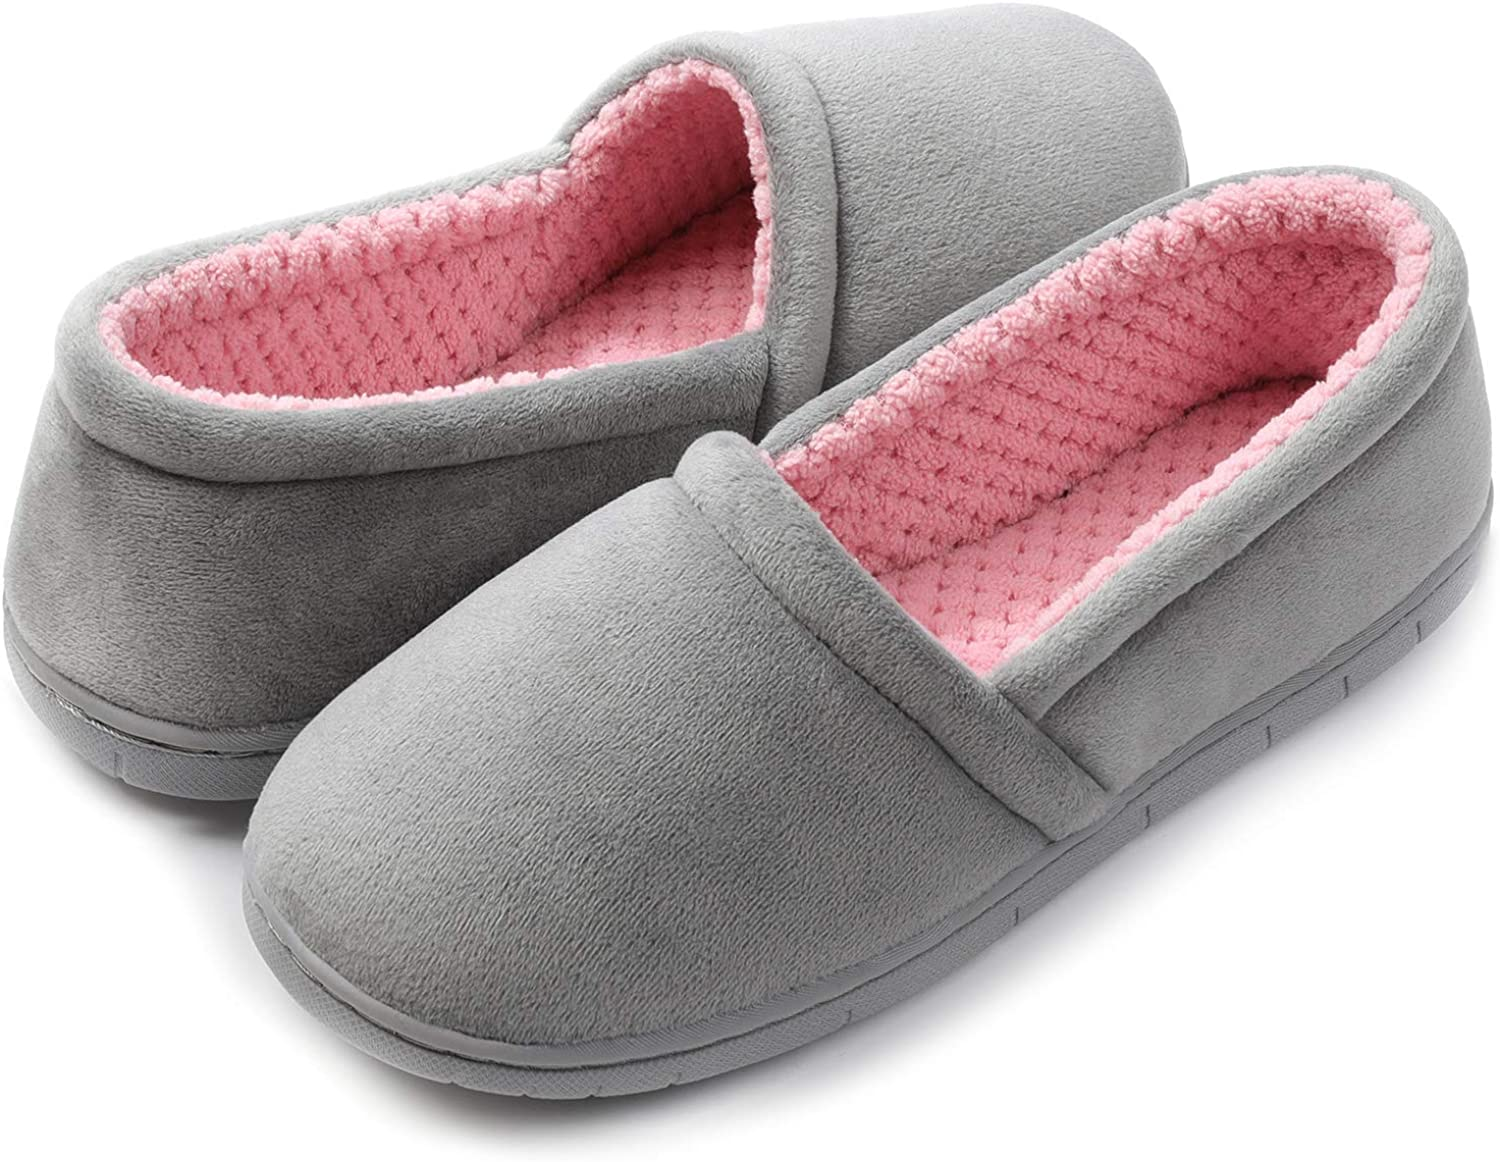 ULTRAIDEAS Women's Comfy Lightweight Slippers Non-Slip House Shoes for Indoor & Outdoor